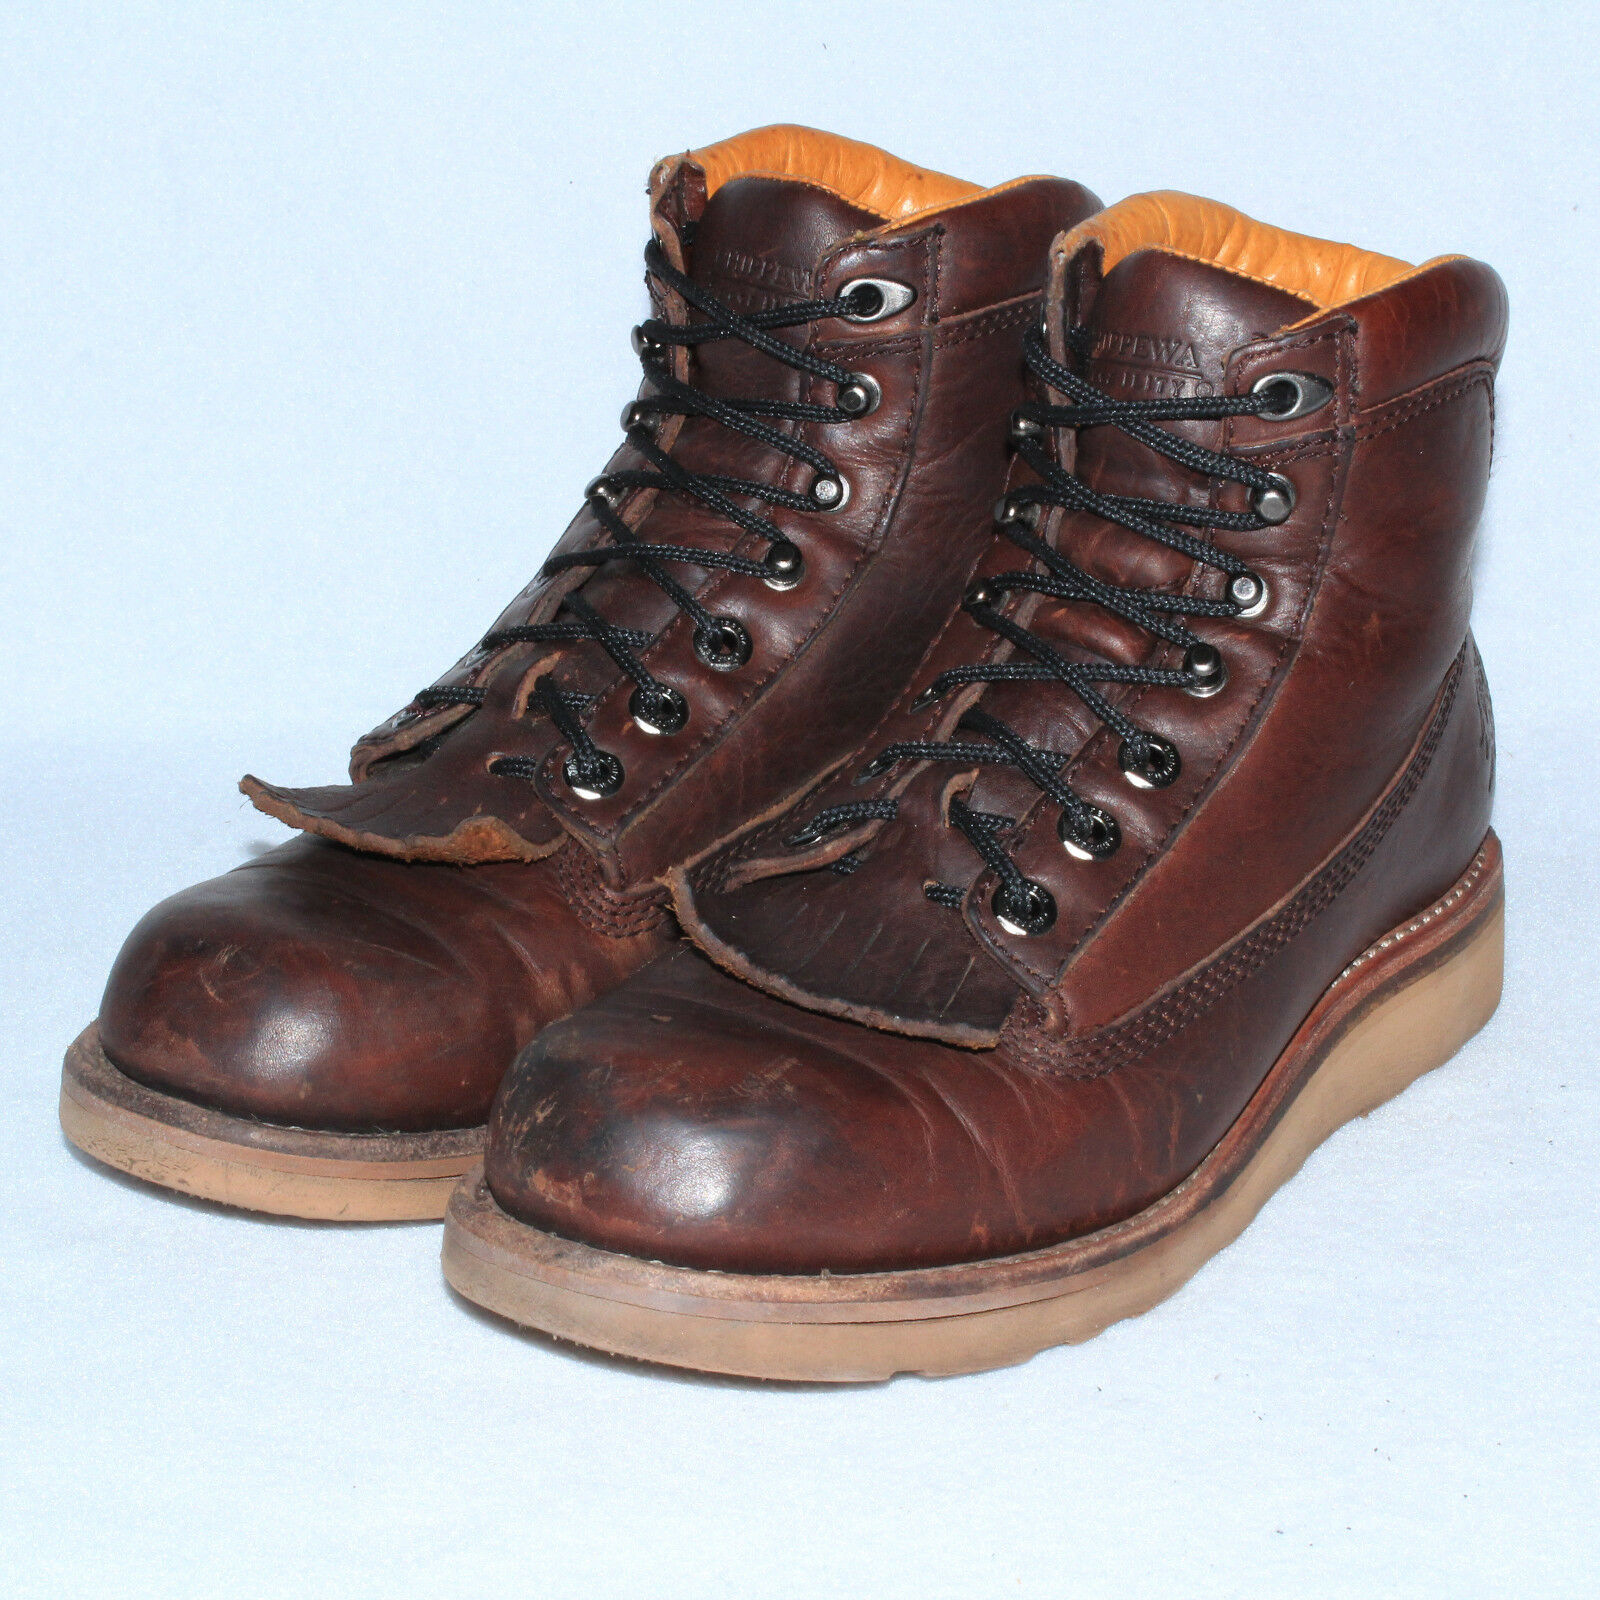 GORGEOUS VTG CHIPPEWA MENS 6